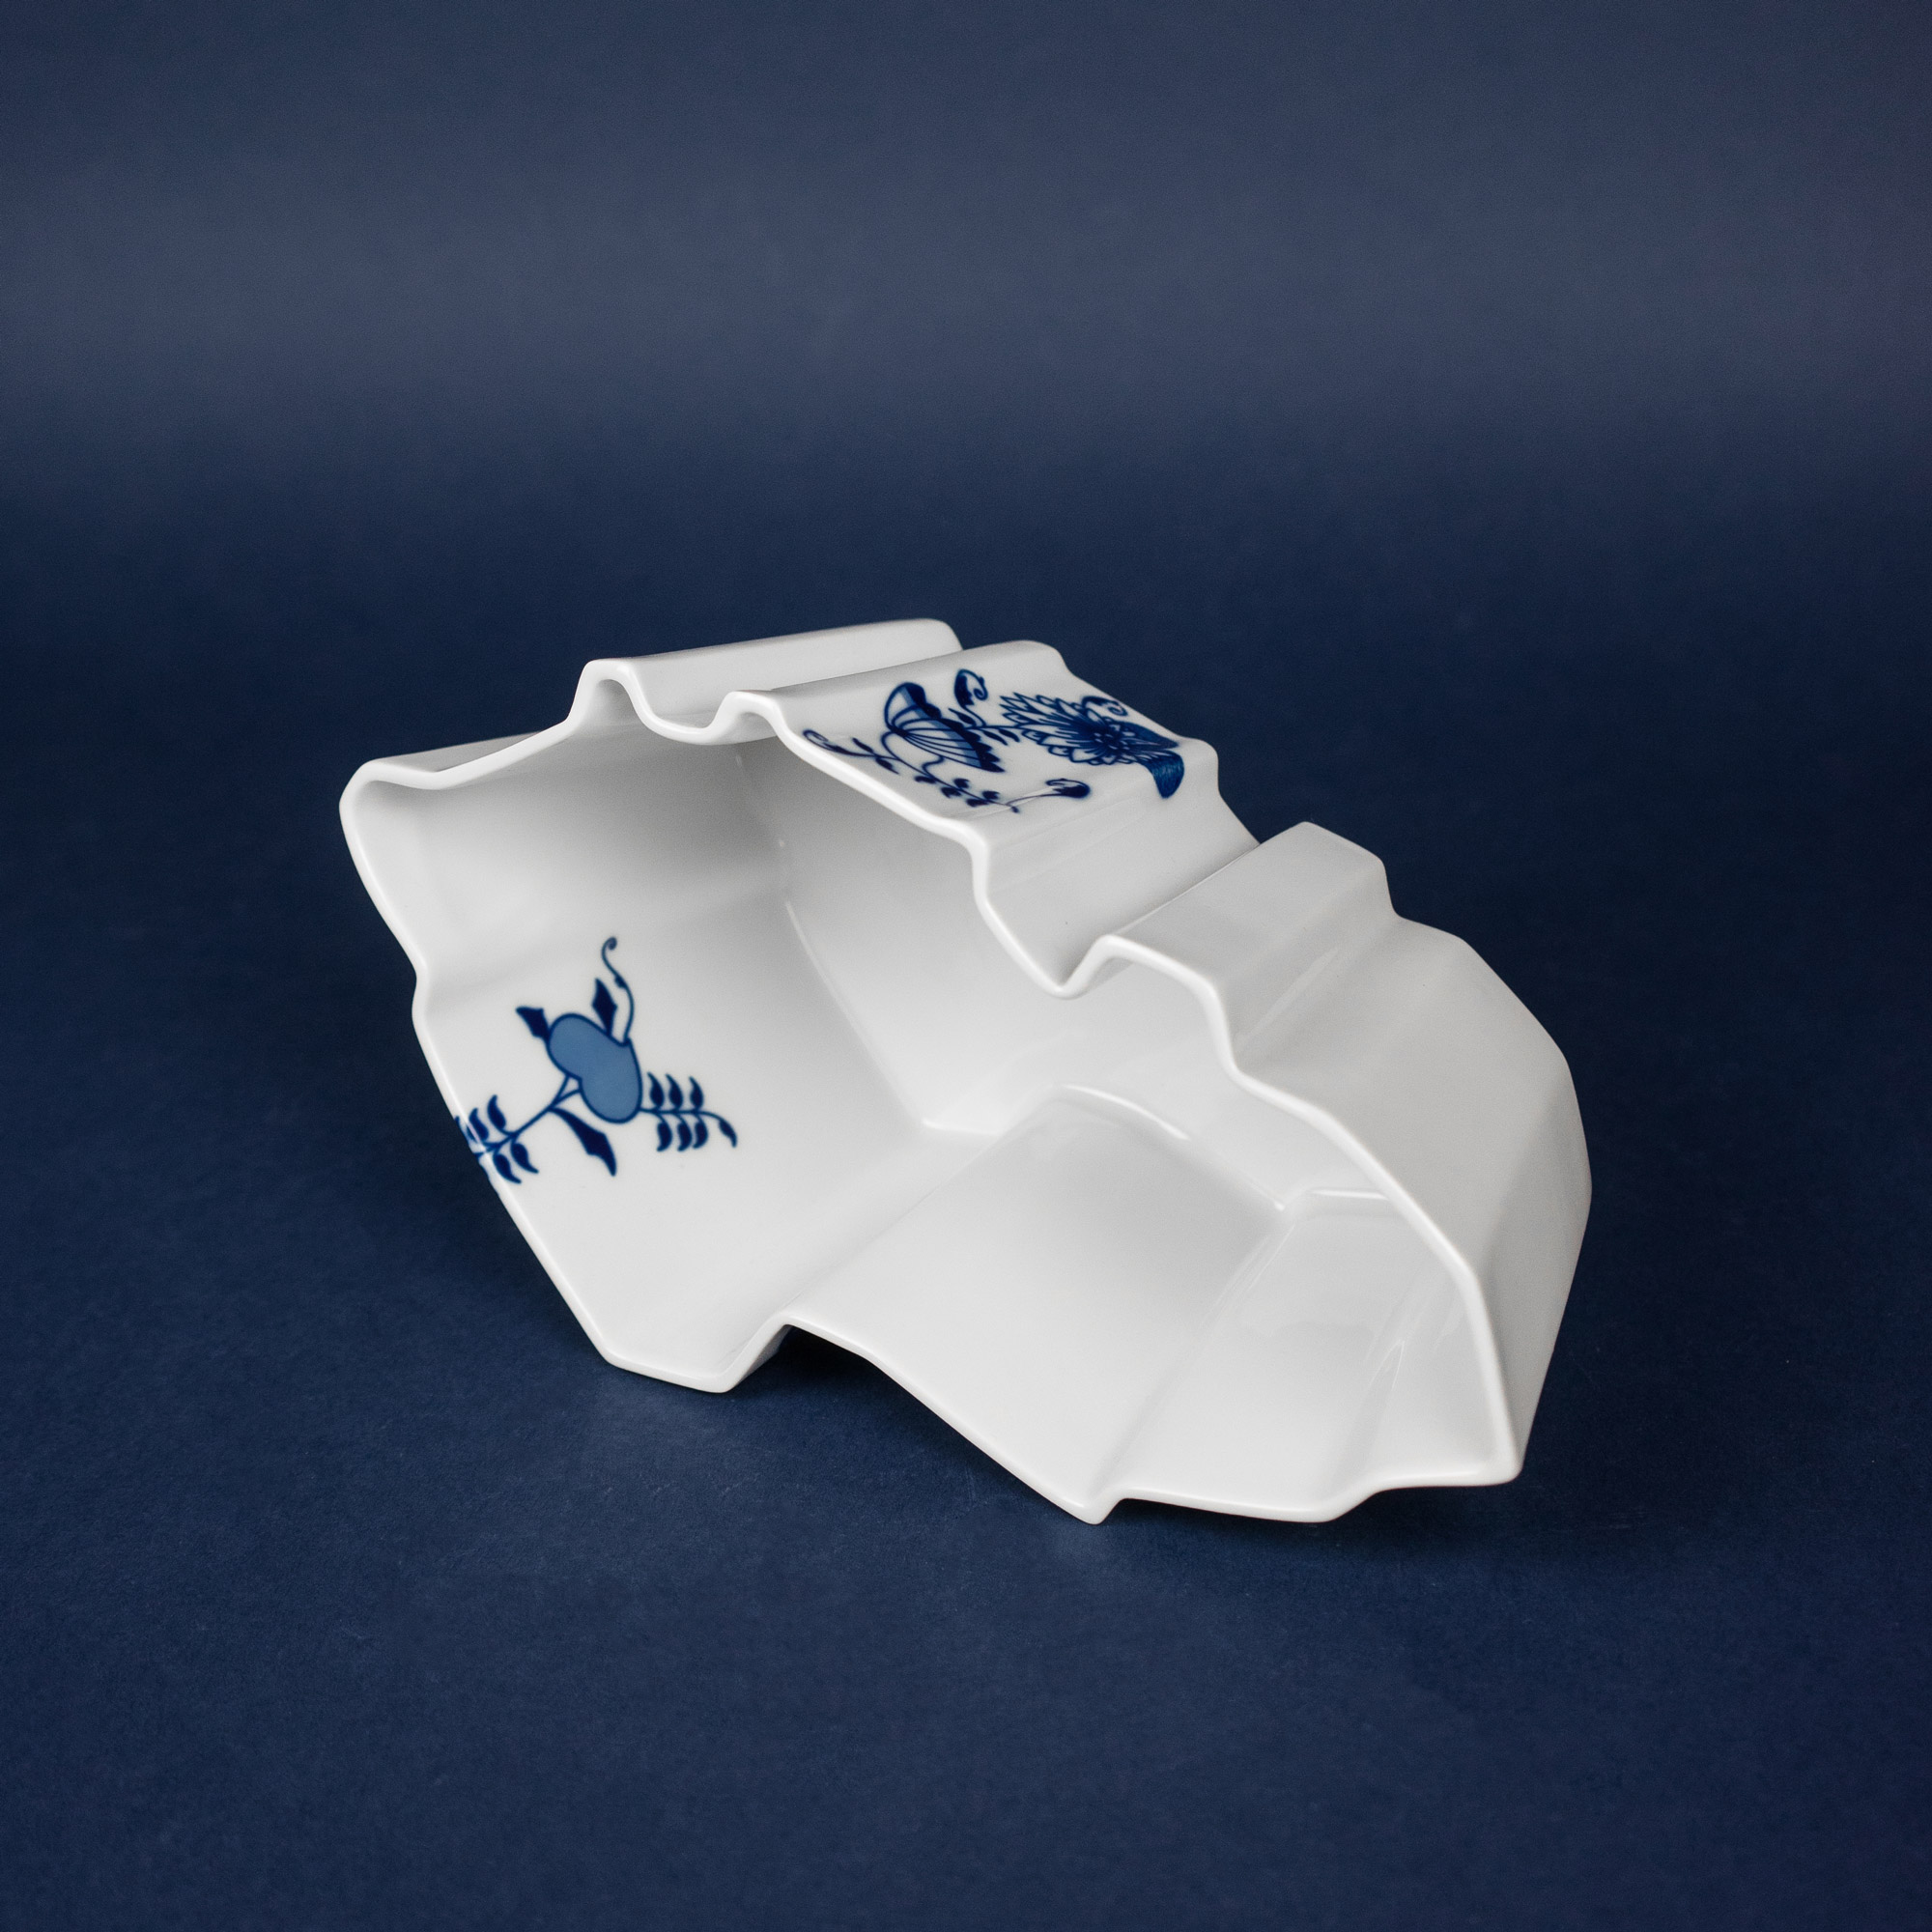 Porcelain bowl in a shape of Czechia by Qubus design studio